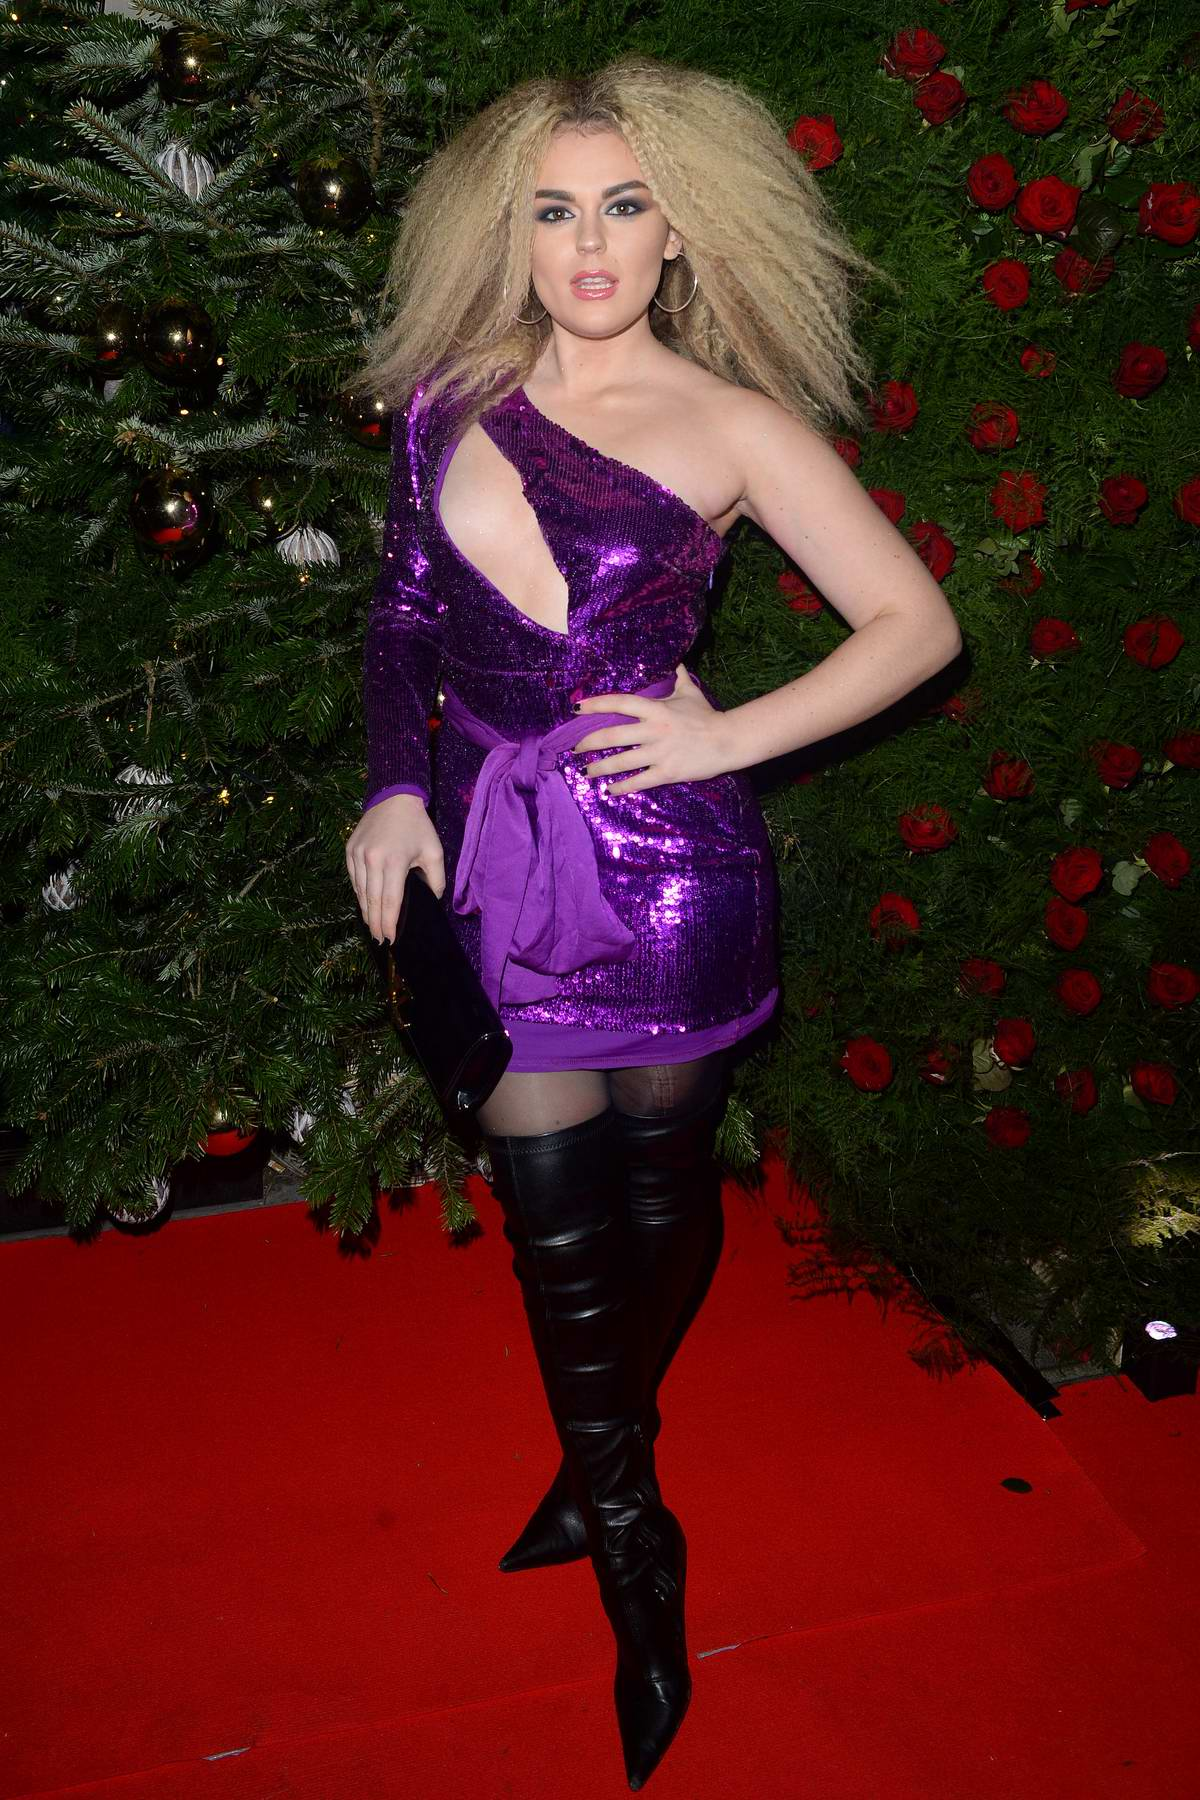 Tallia Storm attends the Tramp Private Members Club Xmas Party in London, UK